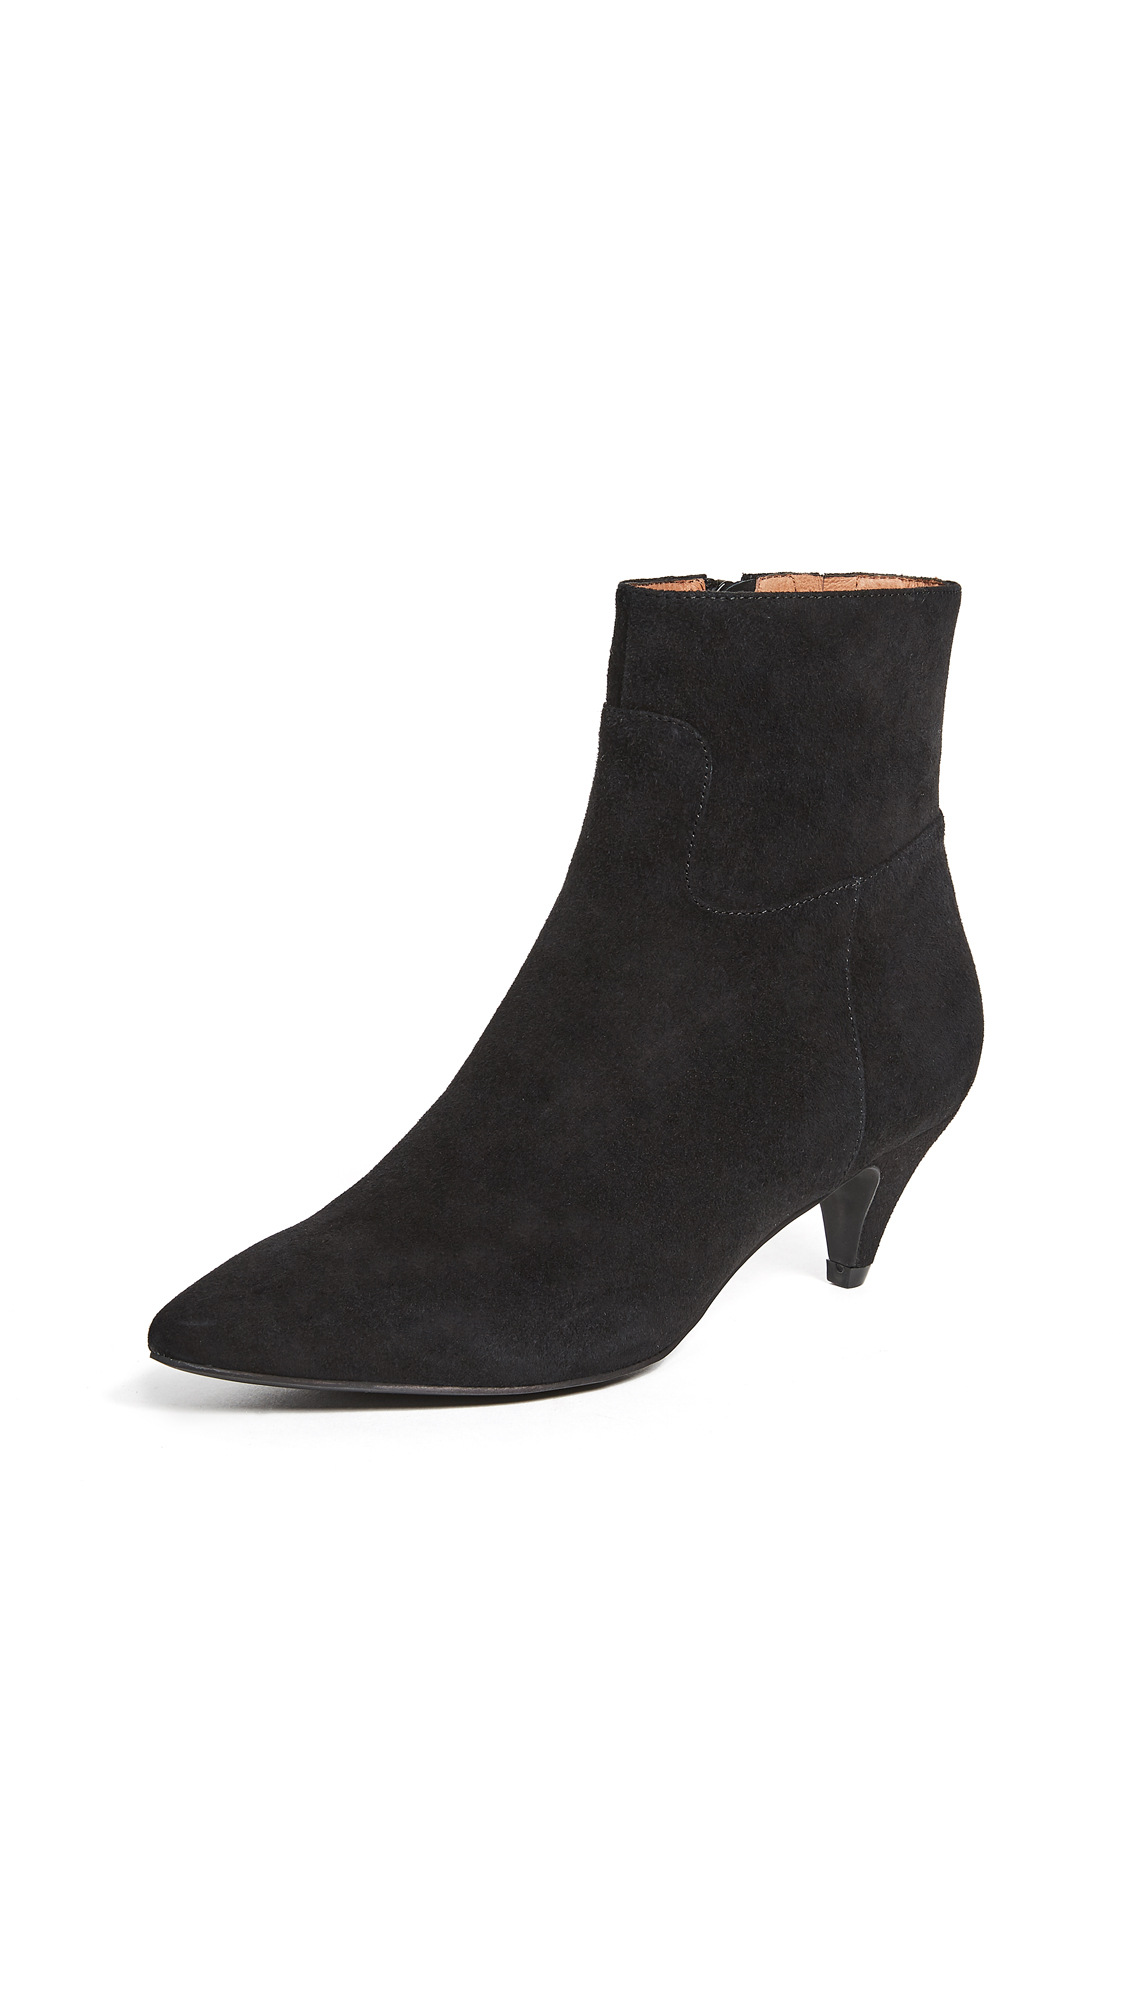 Jeffrey Campbell Muse Kitten Heel Booties - Black